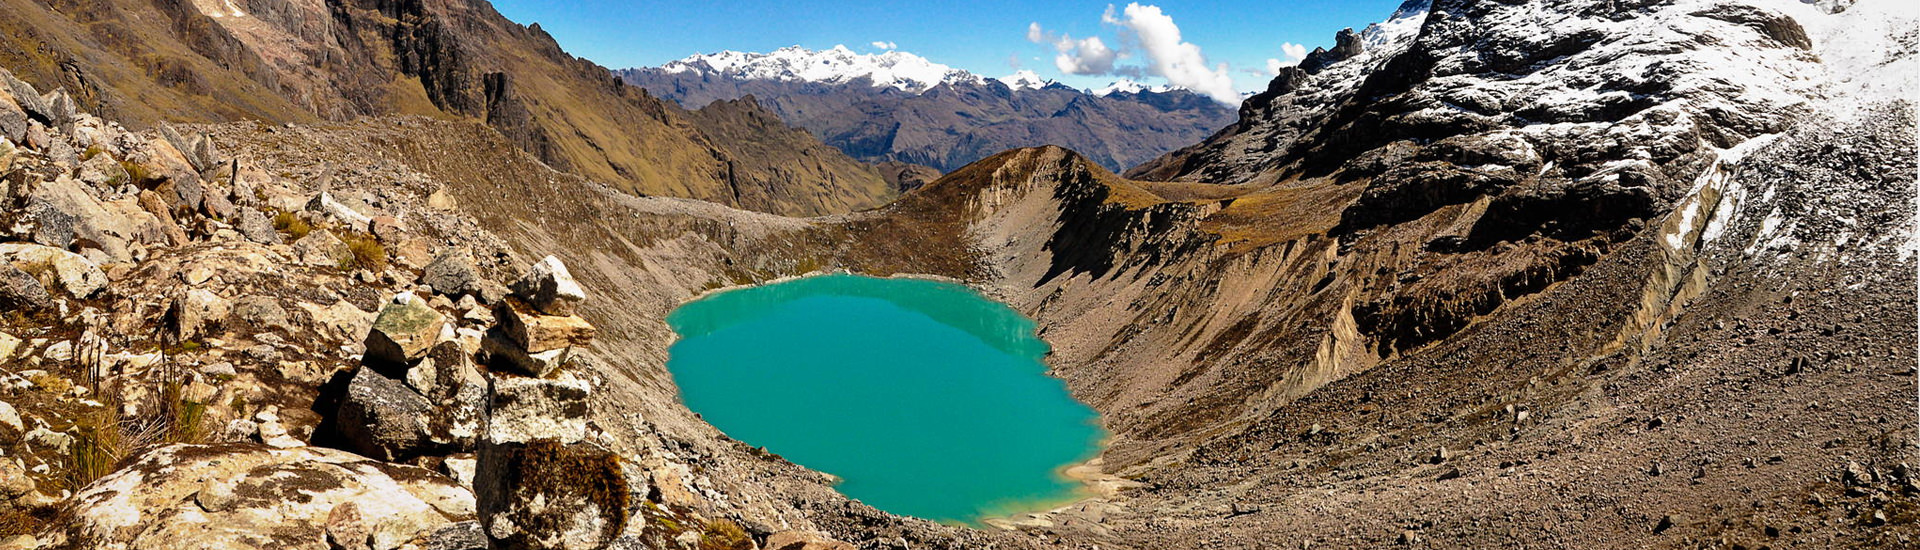 LAGO ANDES